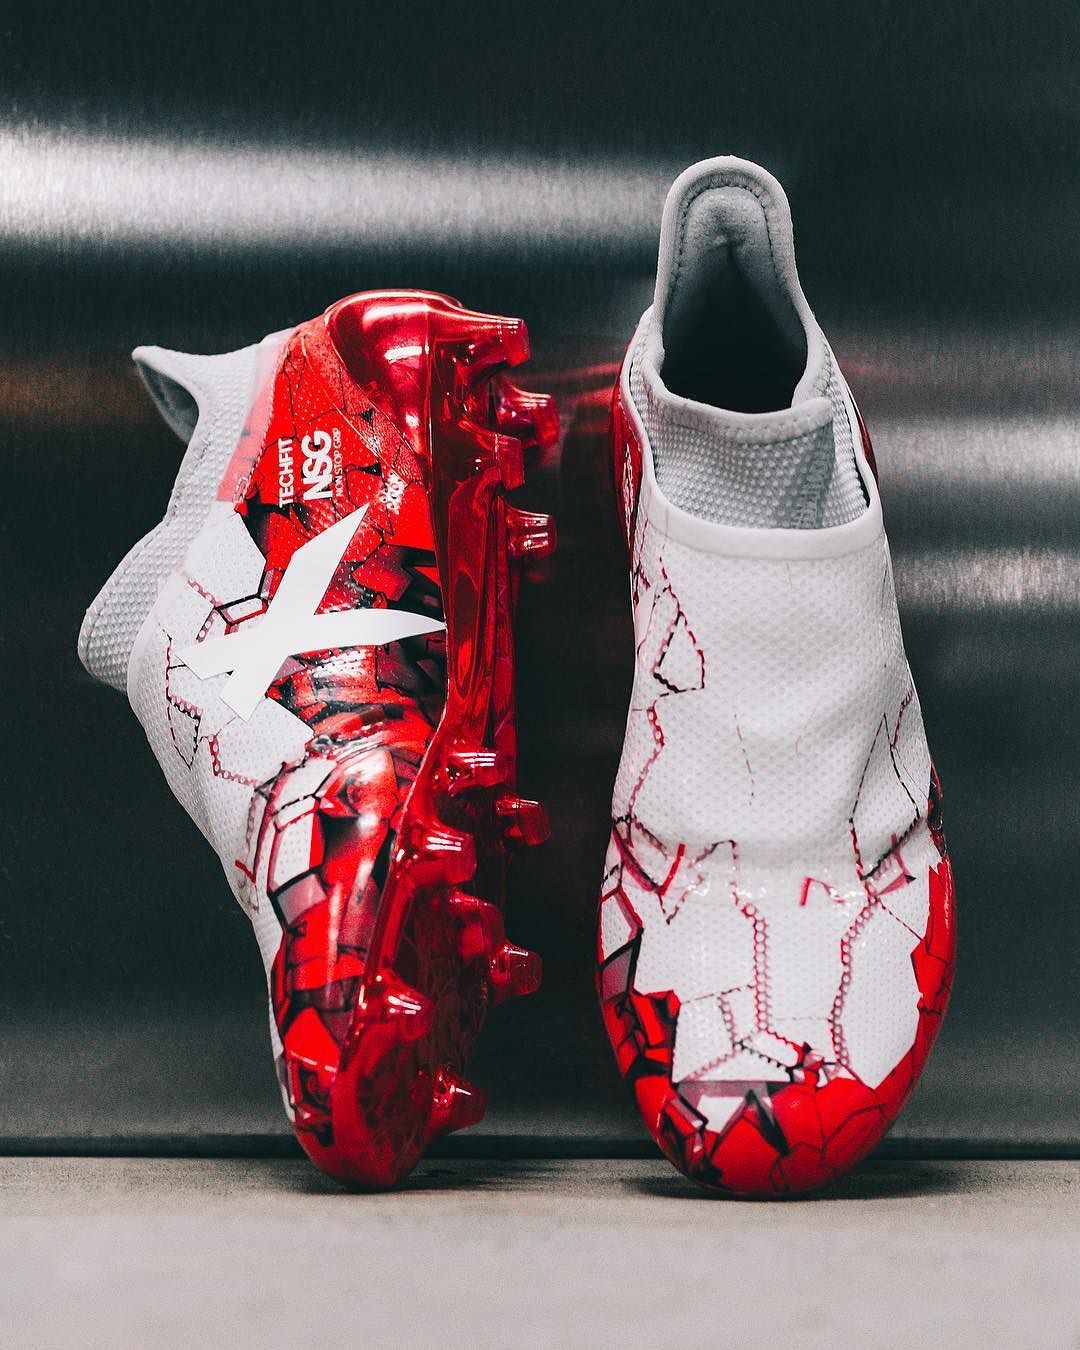 promo code 37b26 04480 Introducing the new Limited Collection adidasfootball Confederations Cup  pack. Available now at the link in the bio. - 📷 danielkobin --  soccerdotcom ...